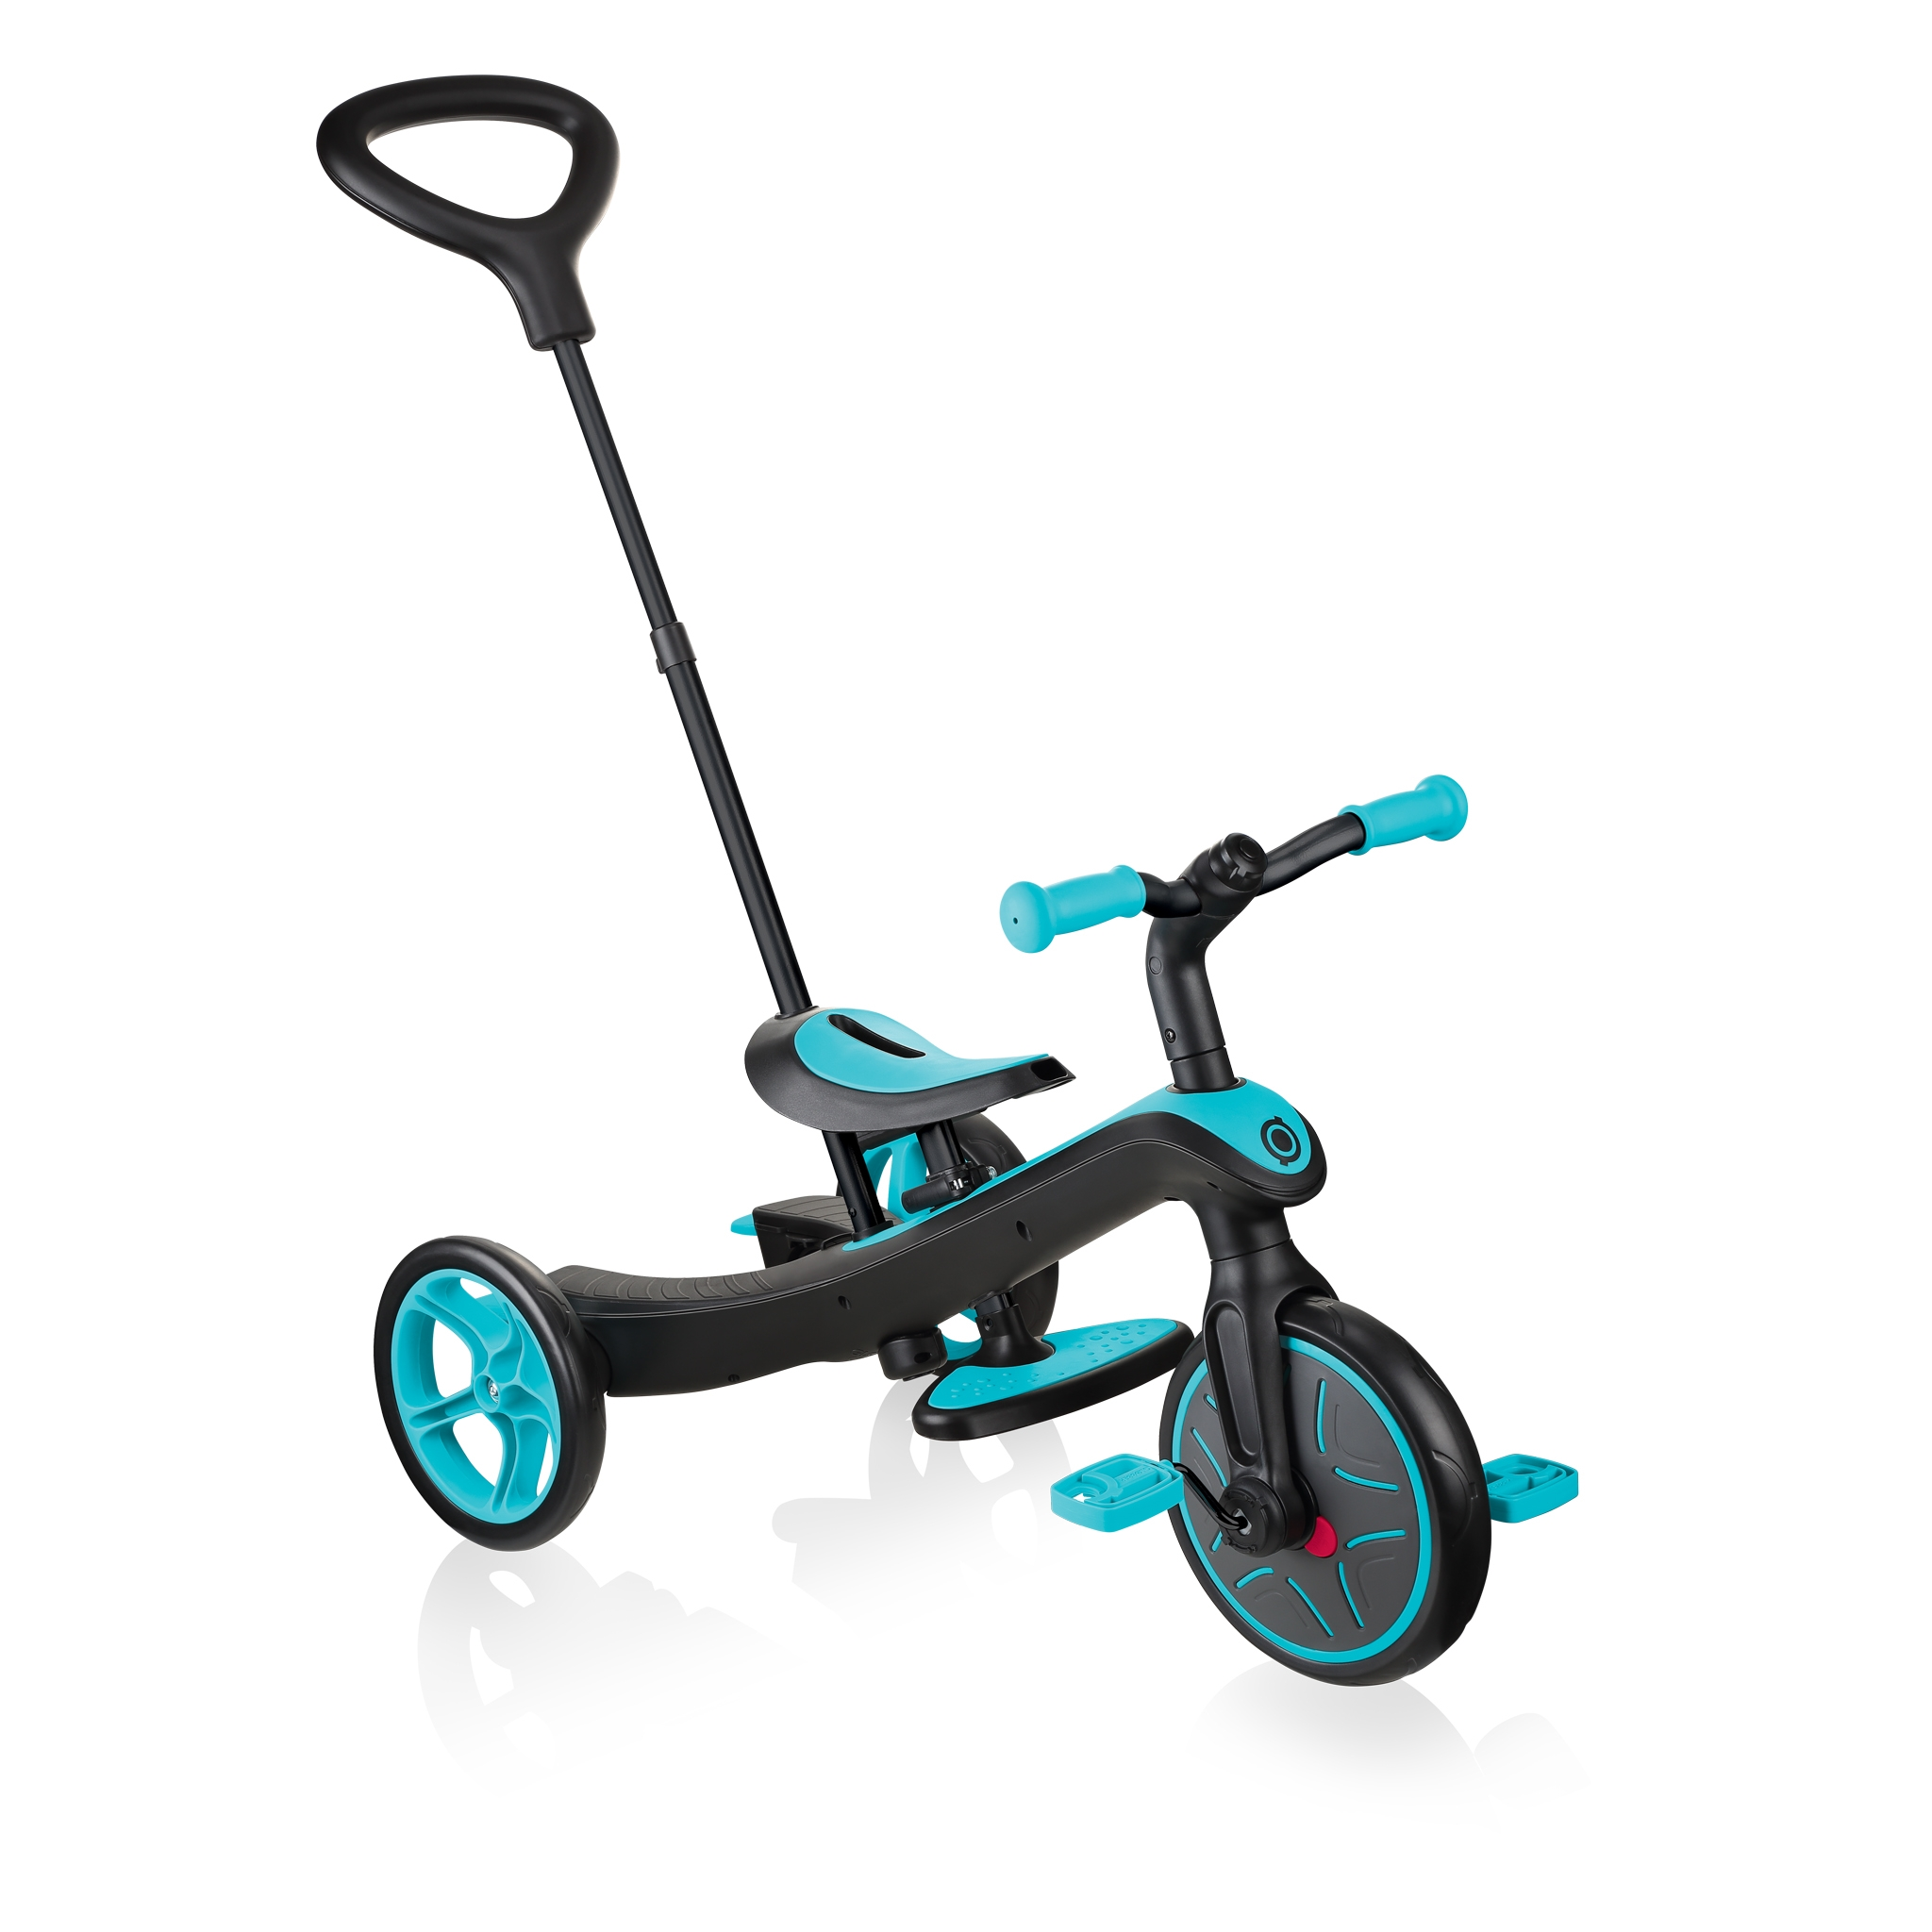 Globber-EXPLORER-TRIKE-3in1-all-in-one-baby-tricycle-and-kids-balance-bike-stage1-guided-trike_teal 0